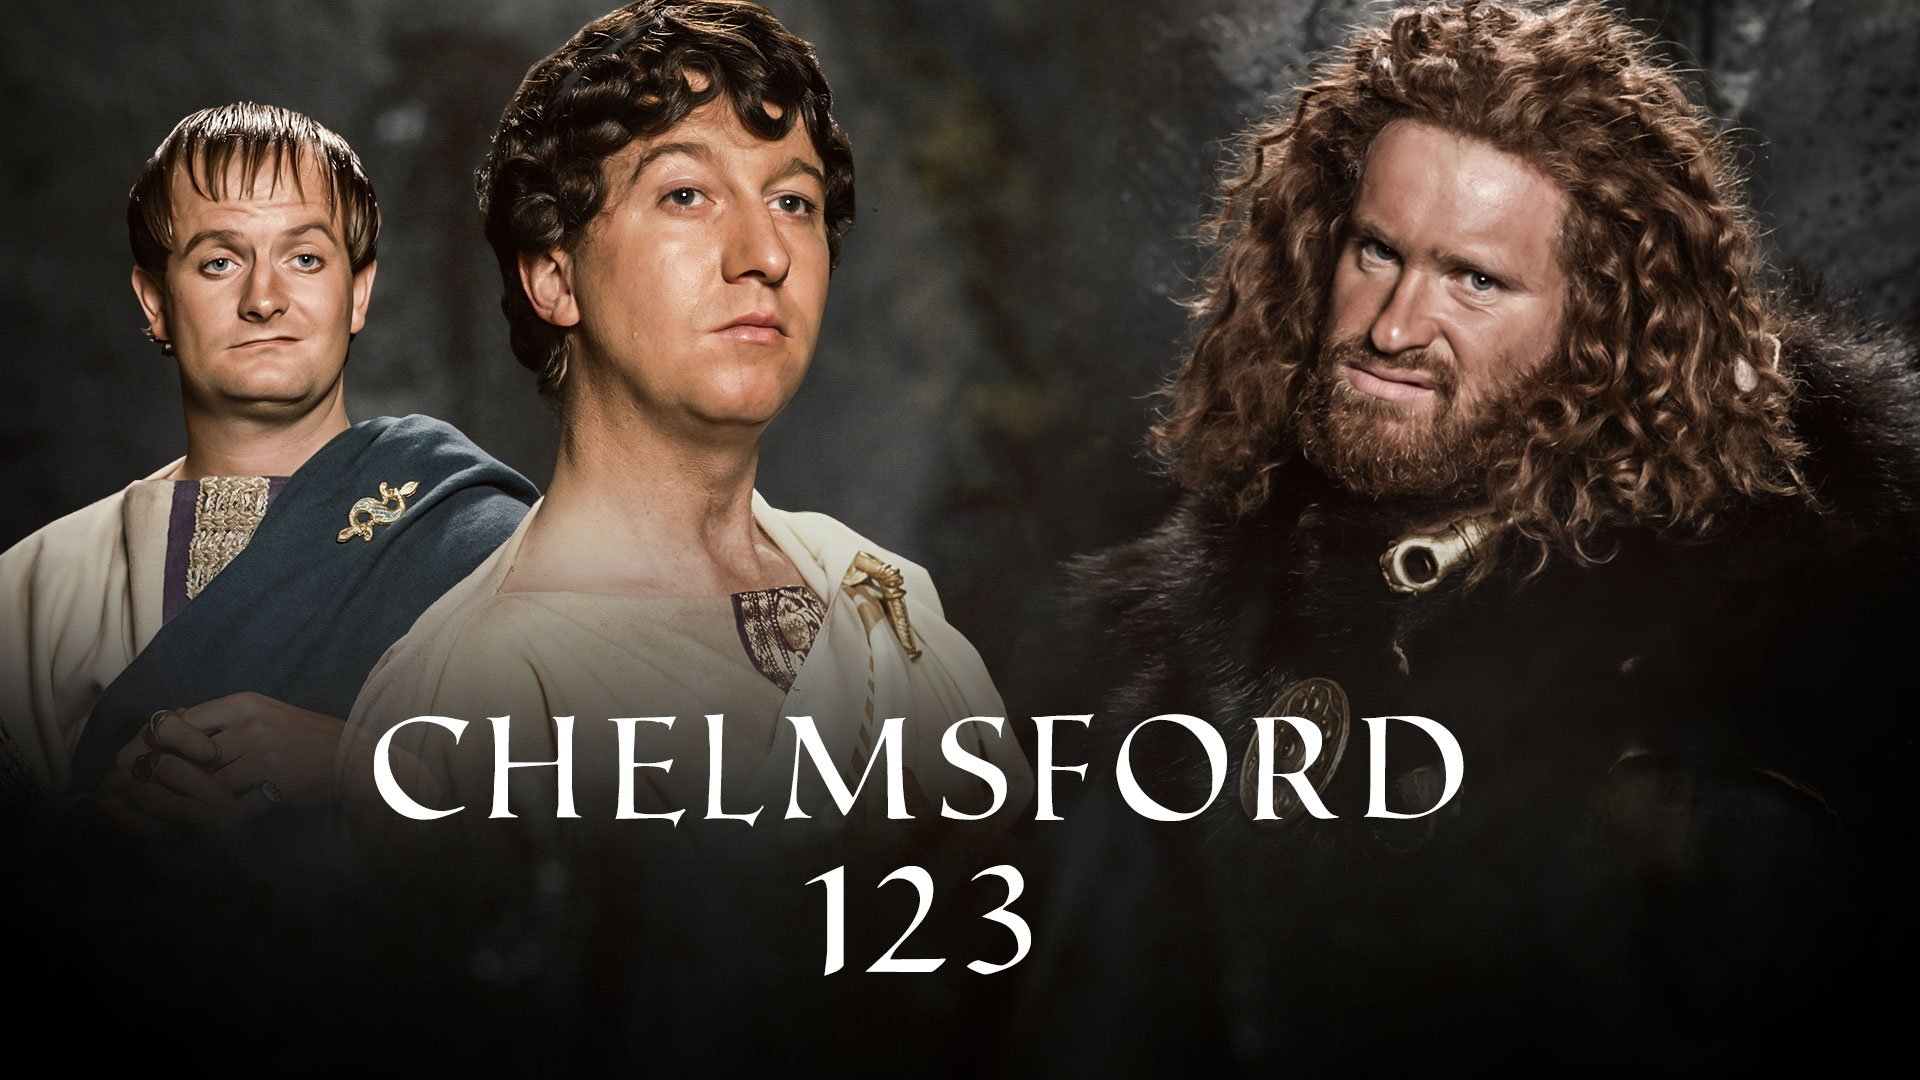 Chelmsford 123 on BritBox UK